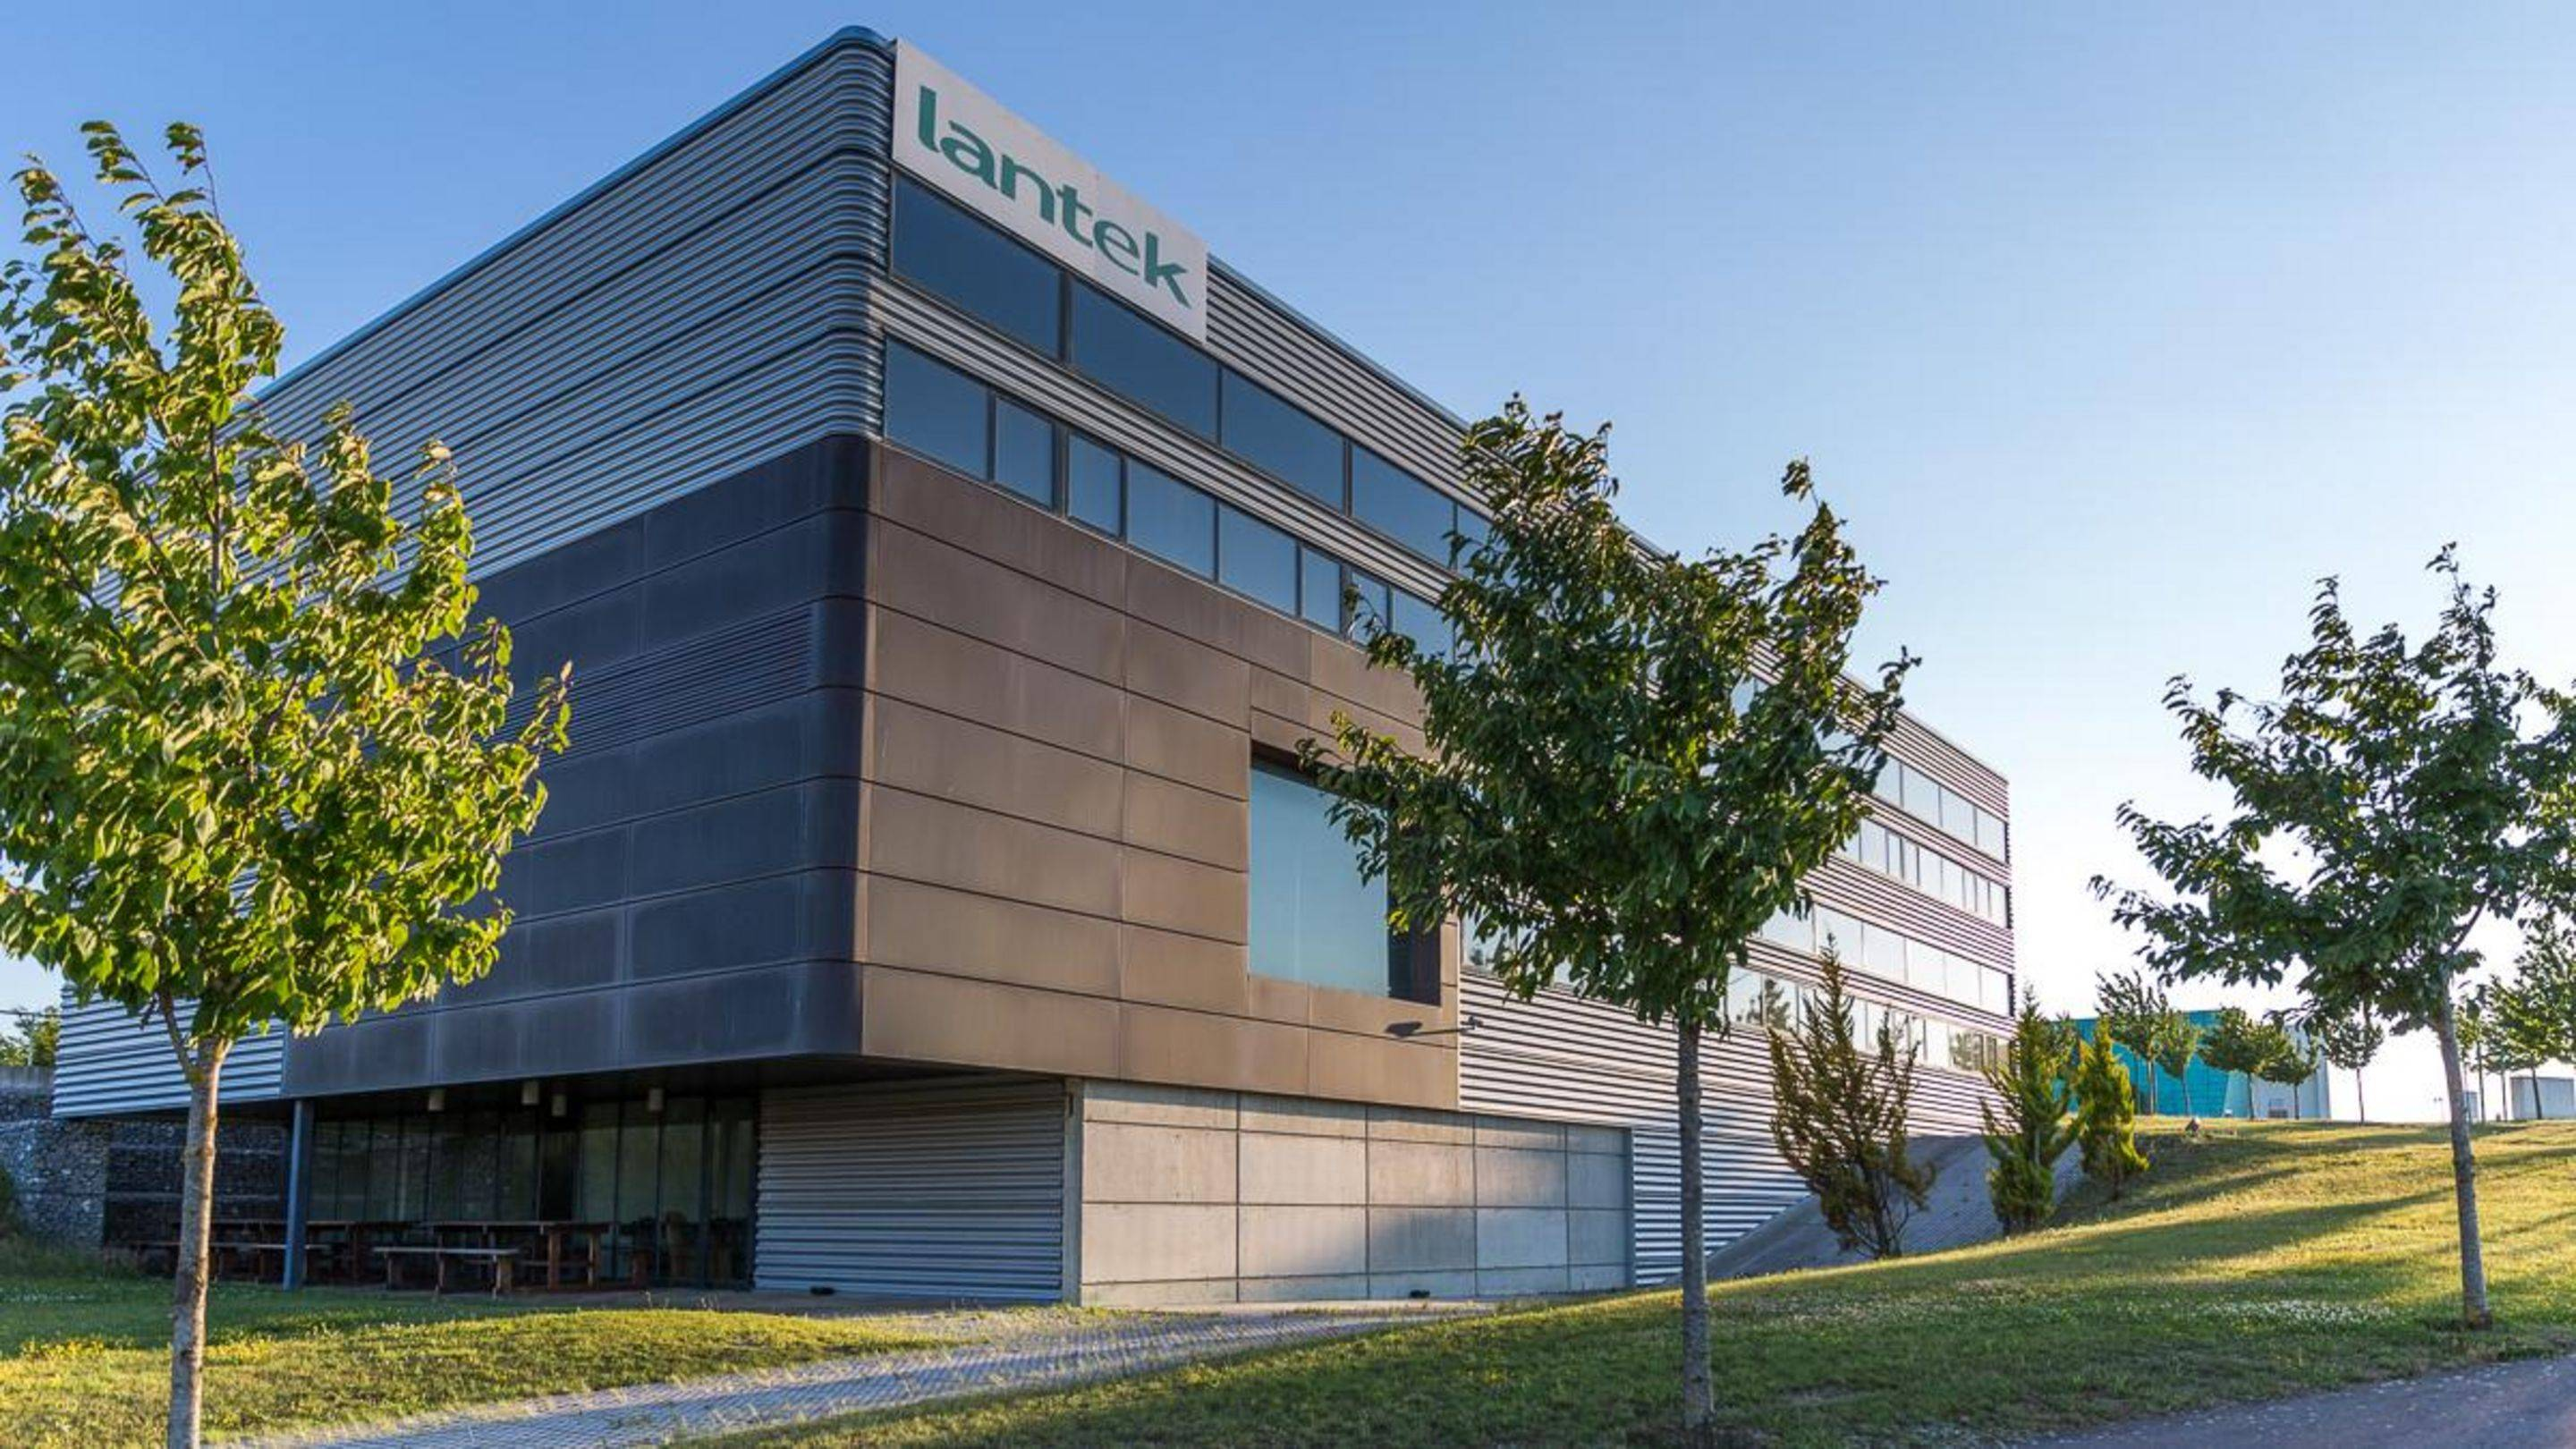 TRUMPF'S acquisition of Lantec should pay dividends for fabricators everywhere